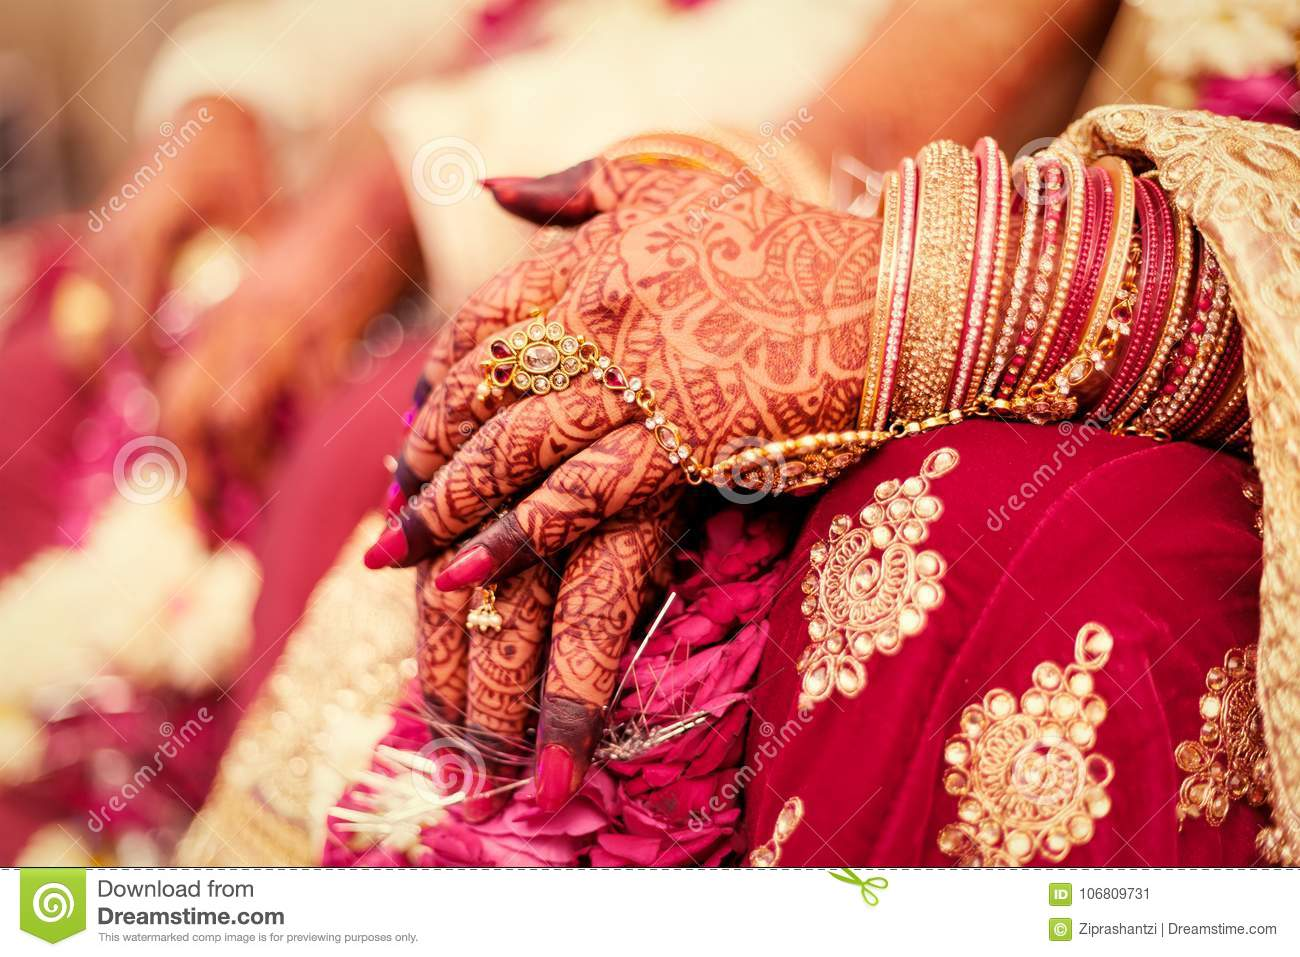 Hands Of An Indian Bride Mehndi Or Henna During A Wedding Ceremony